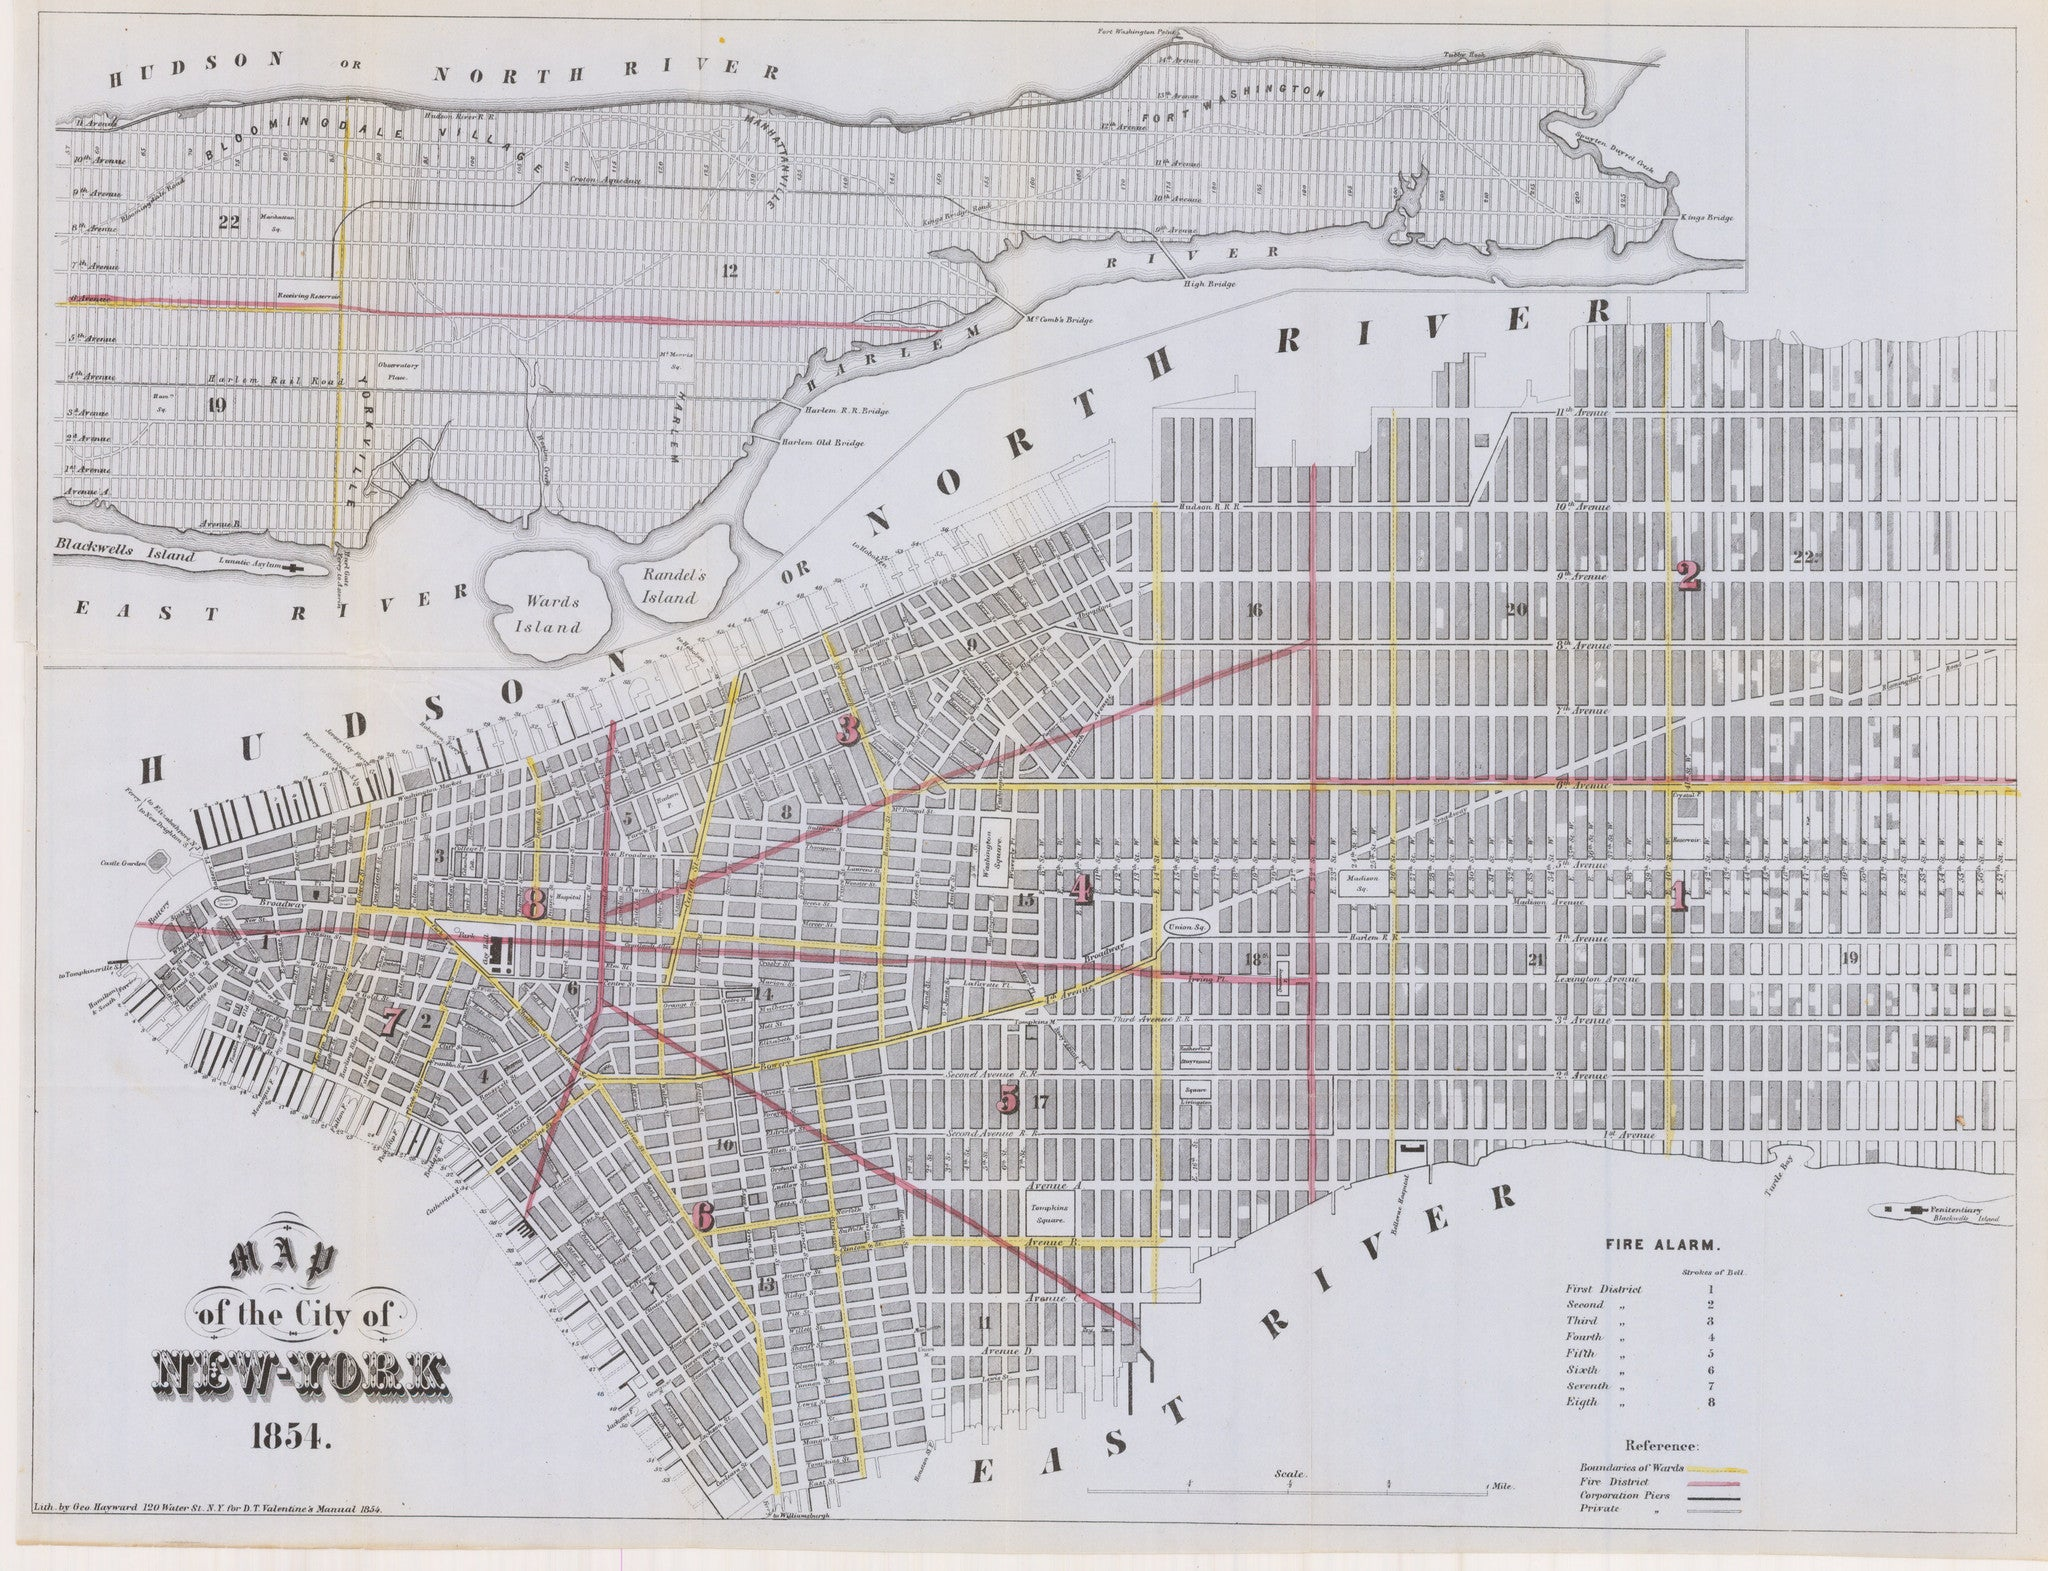 1854 Map of the City of New York